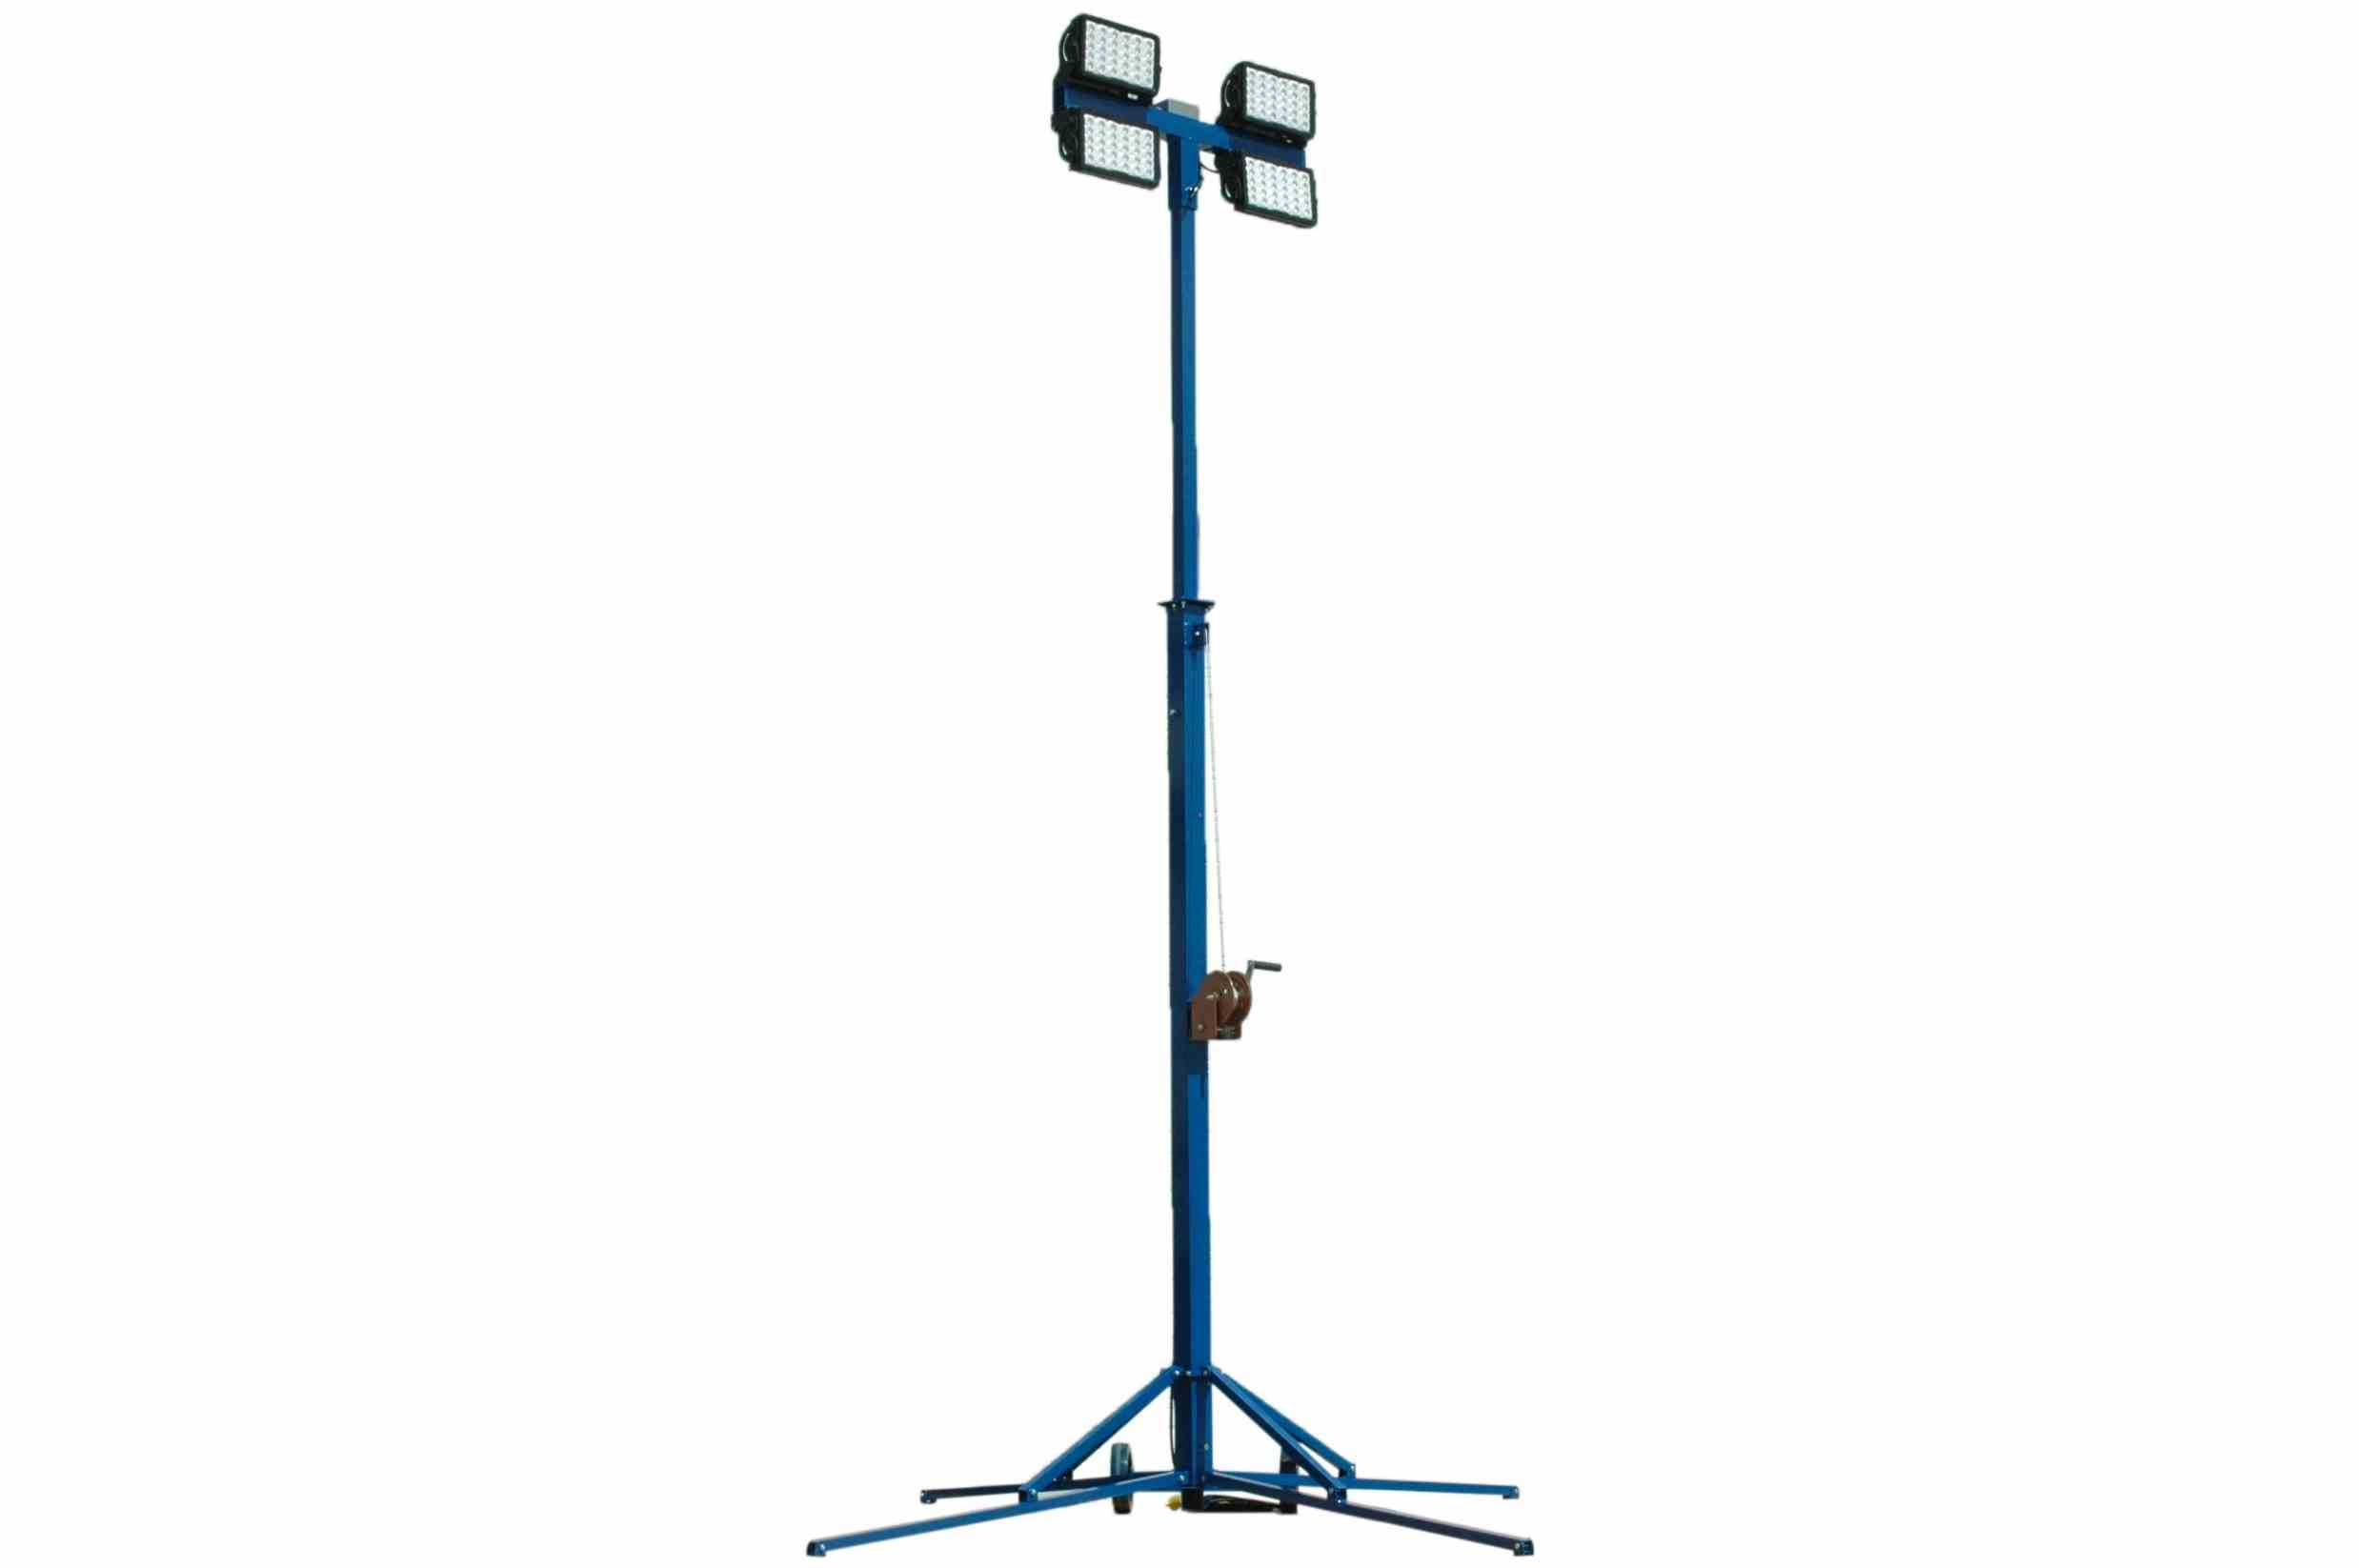 600W Portable Light Tower - (4) LEDs - 24-48V DC - Extends 14' - Magnetic Switchbox - Battery Clamps